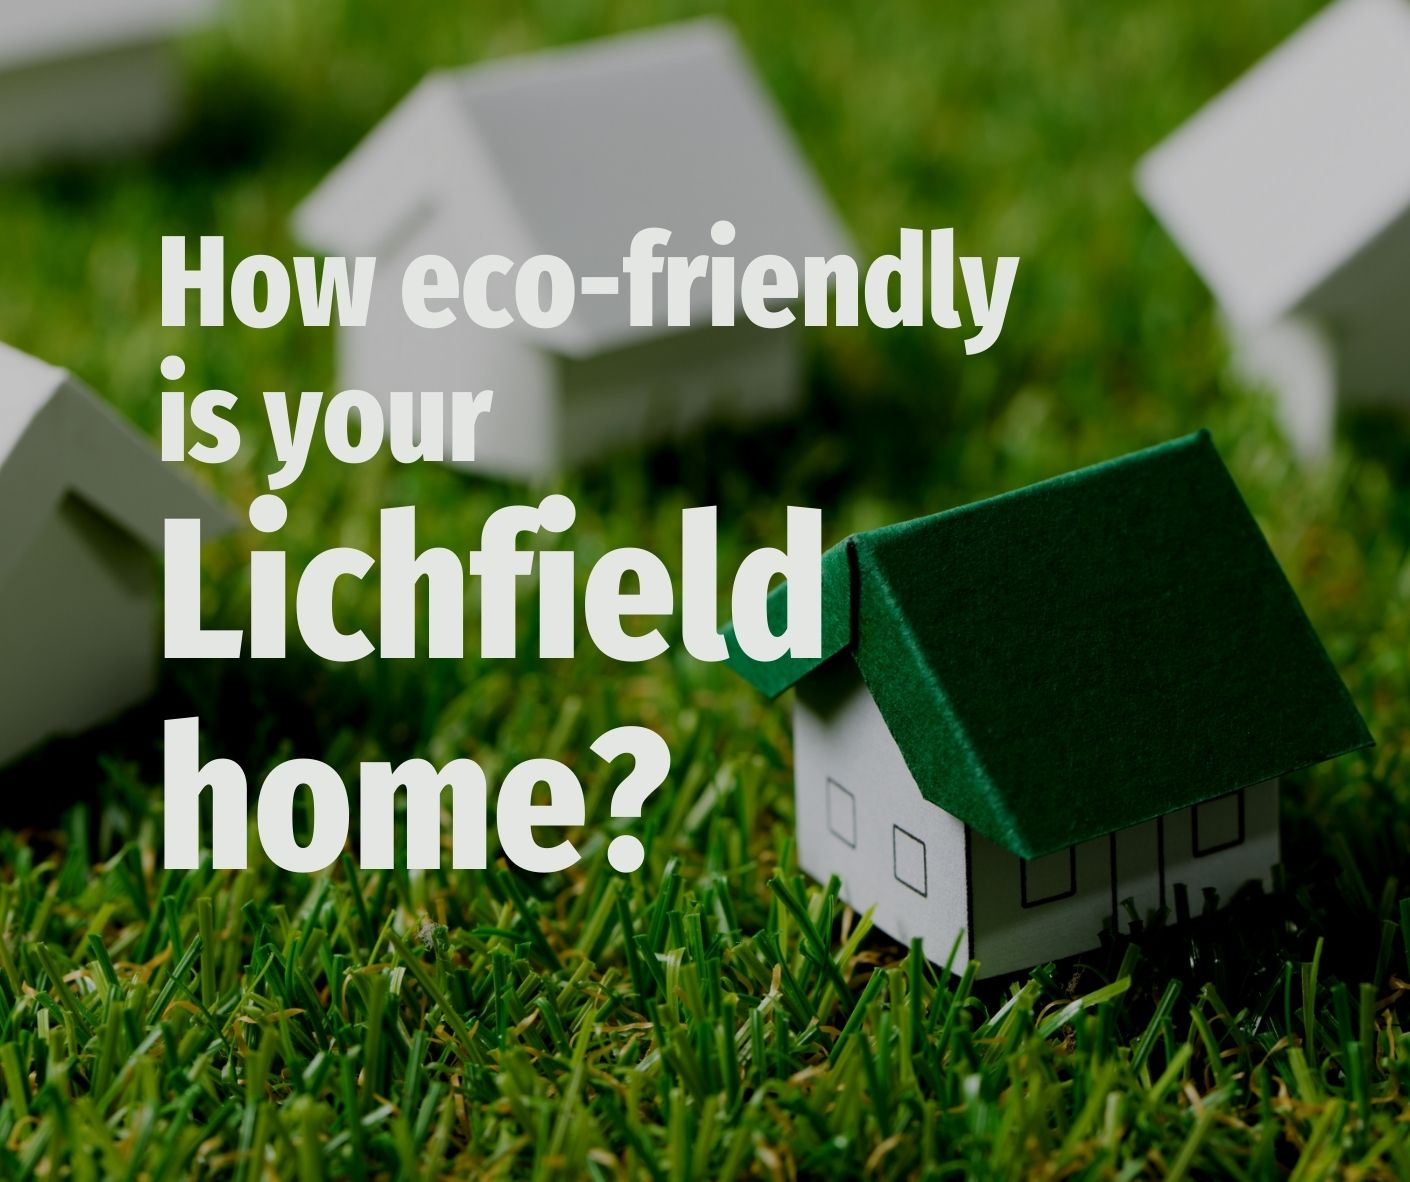 Lichfield-property-news-estate-lettings-agent-barrows-forrester